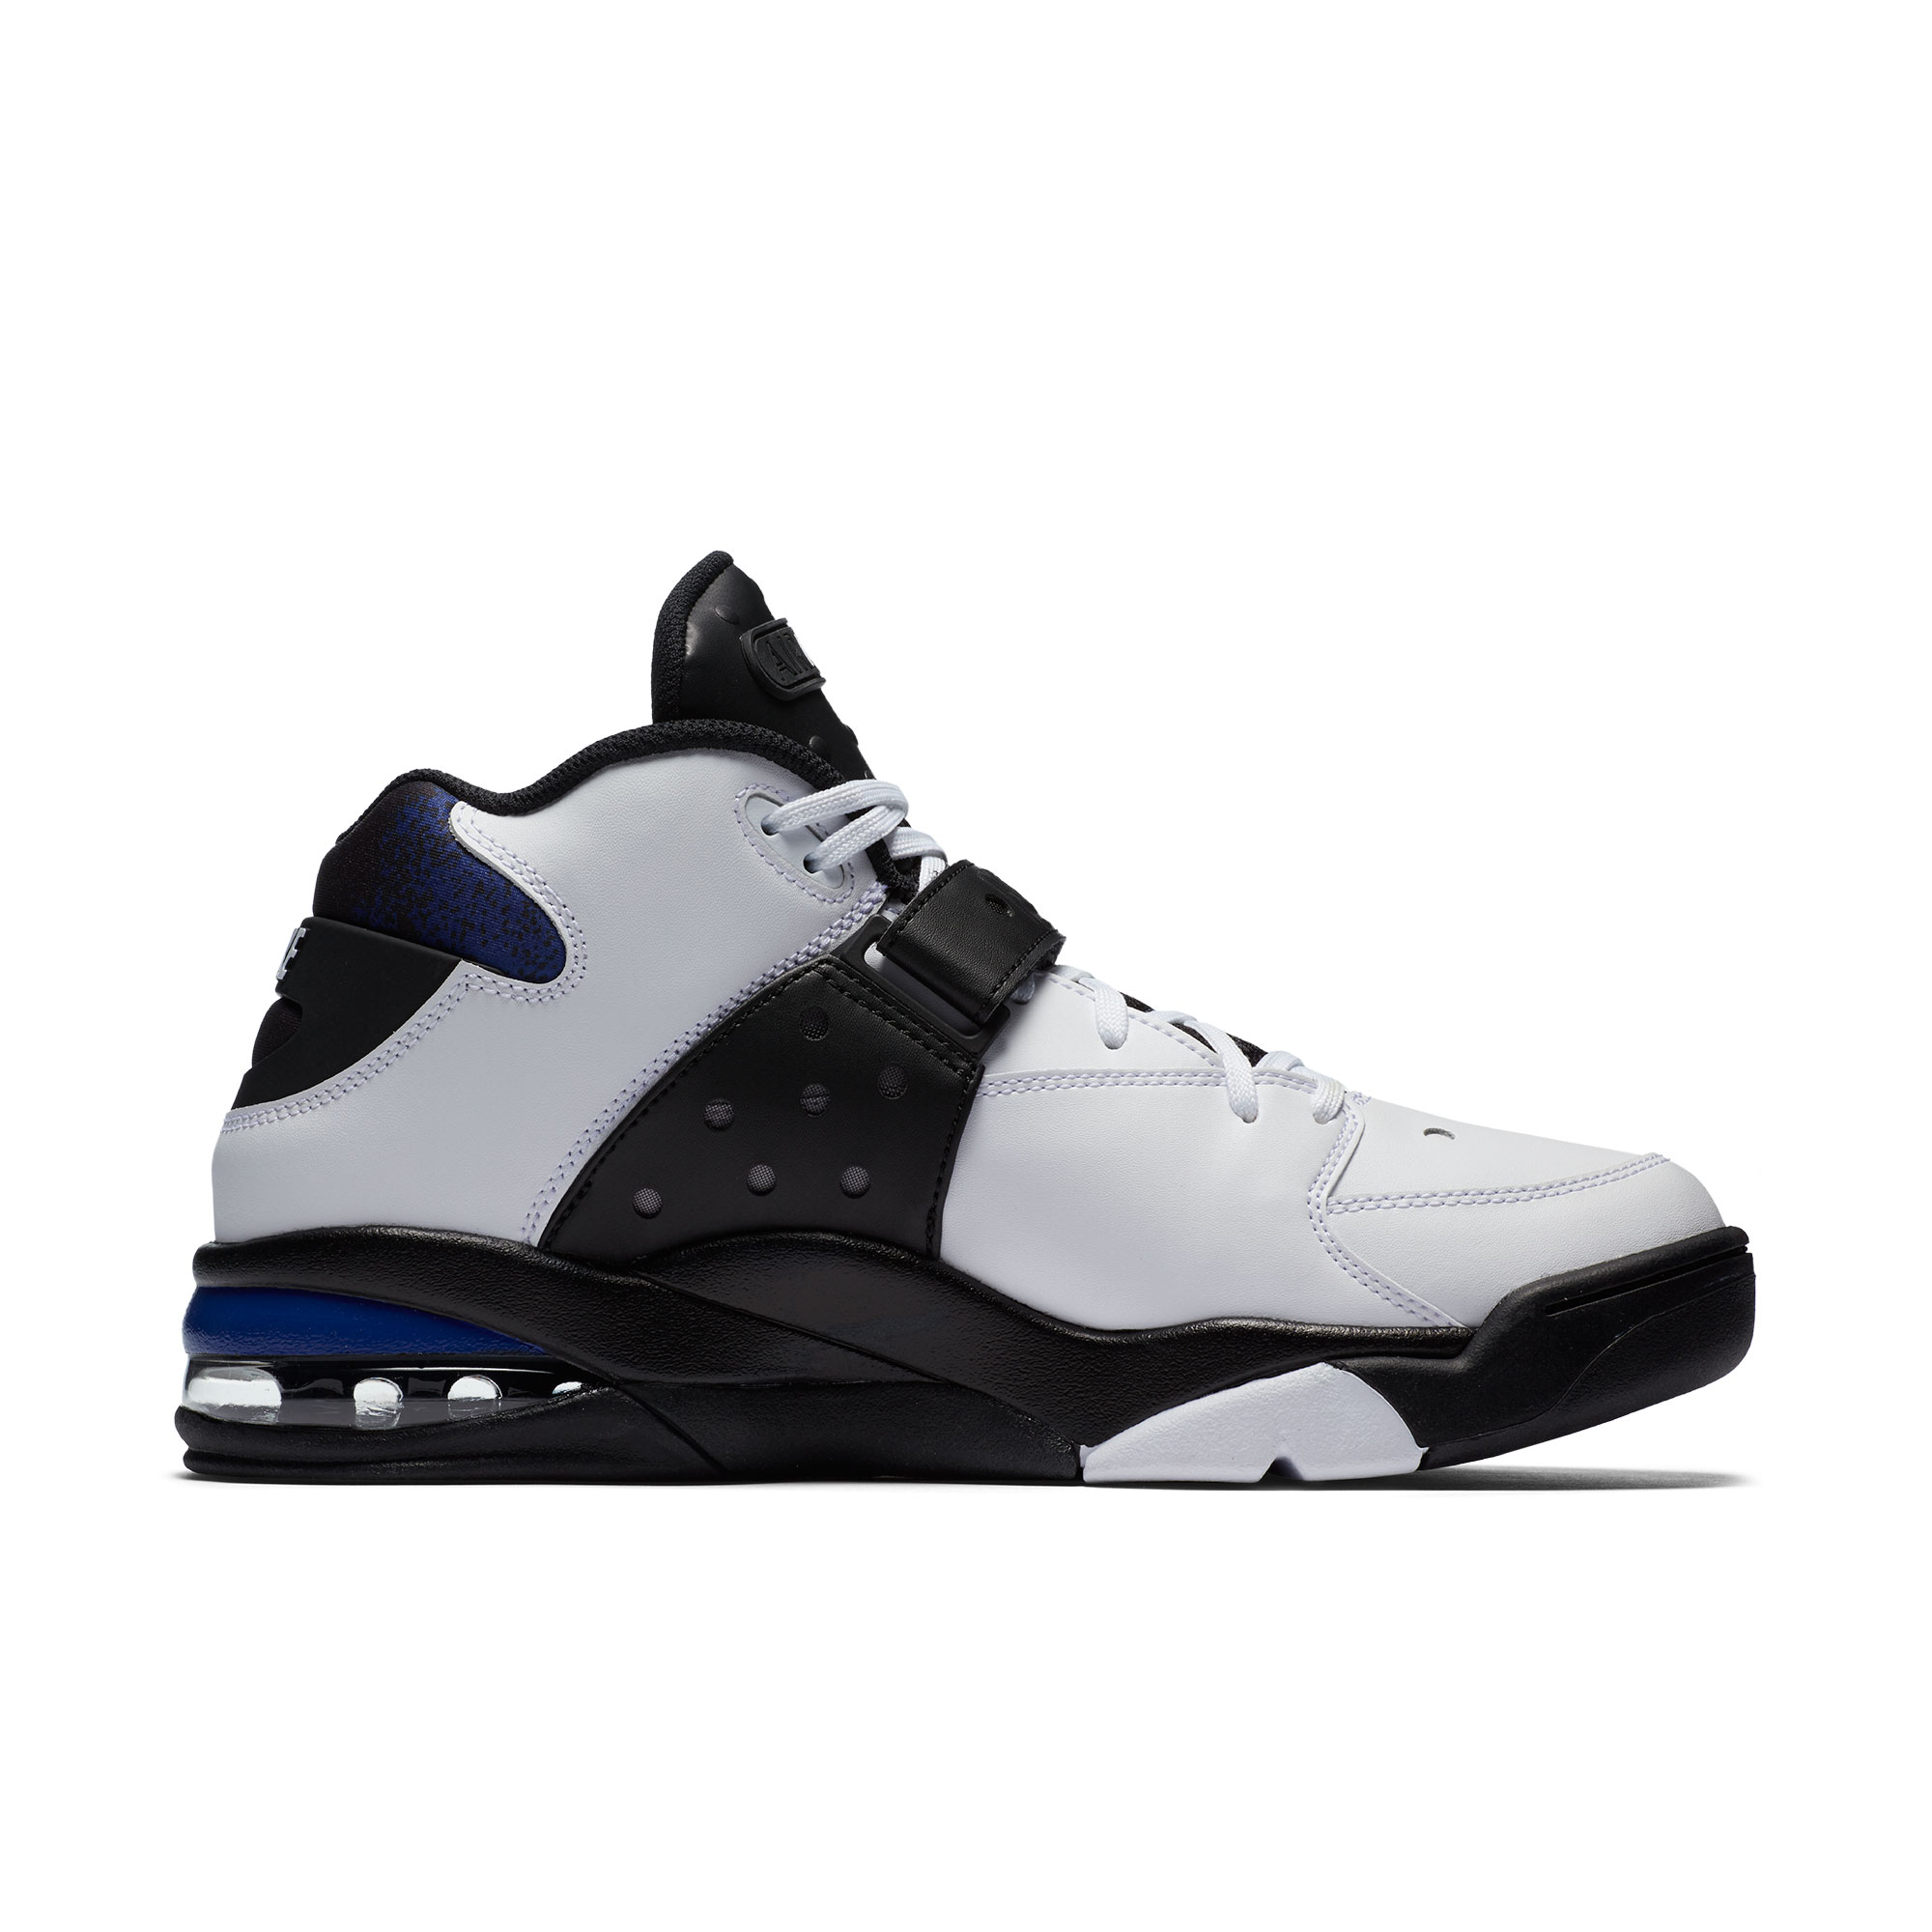 e65d9dea8ec Original New Arrival Authentic NIKE AIR FORCE MAX mens mens basketball  shoes sneakers AH5534 Sport Outdoor-in Basketball Shoes from Sports    Entertainment ...